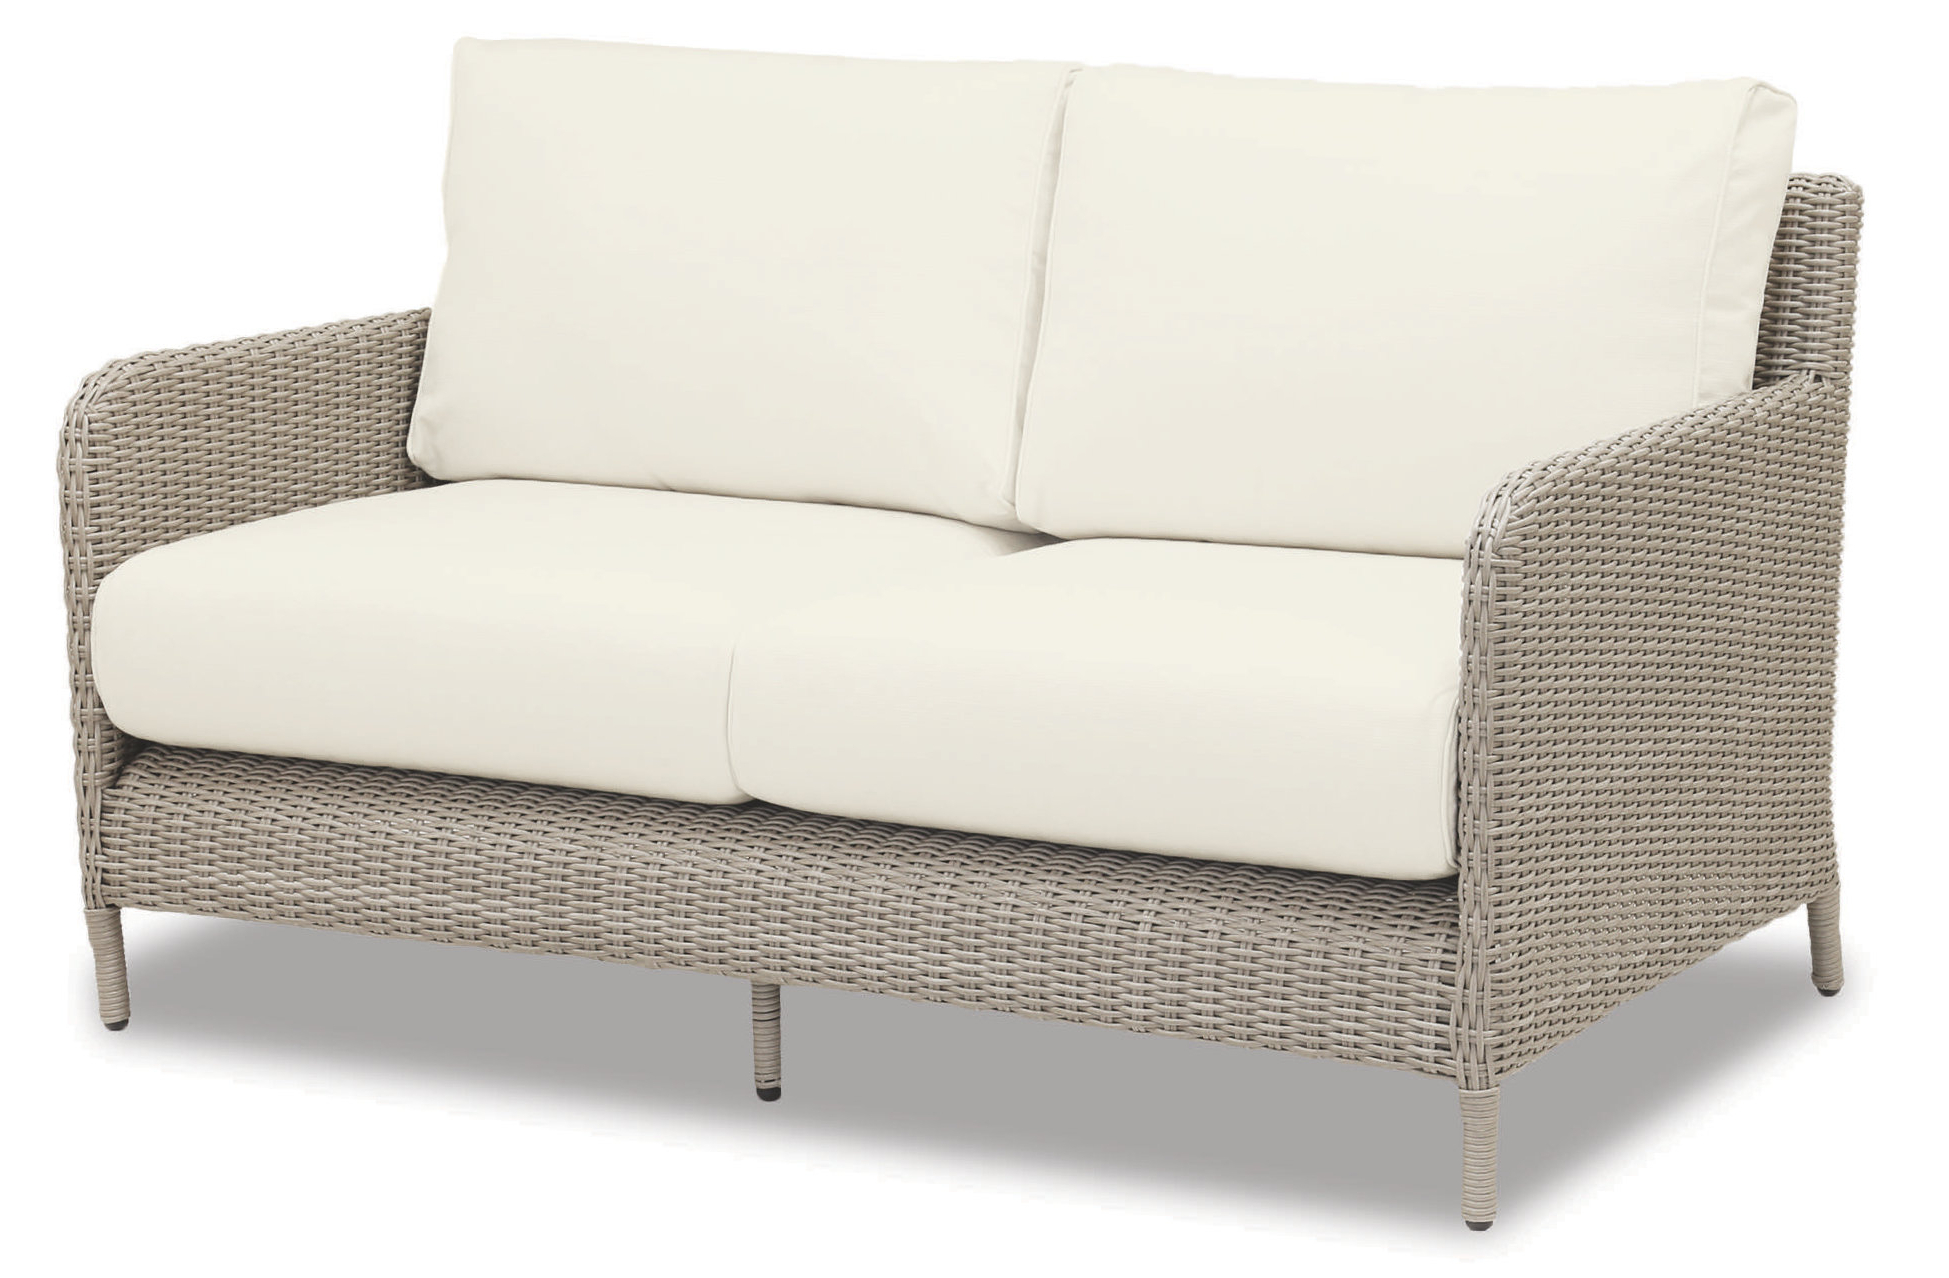 Northridge Loveseats With Cushions Intended For Most Current Manhattan Loveseat With Cushions (View 13 of 20)